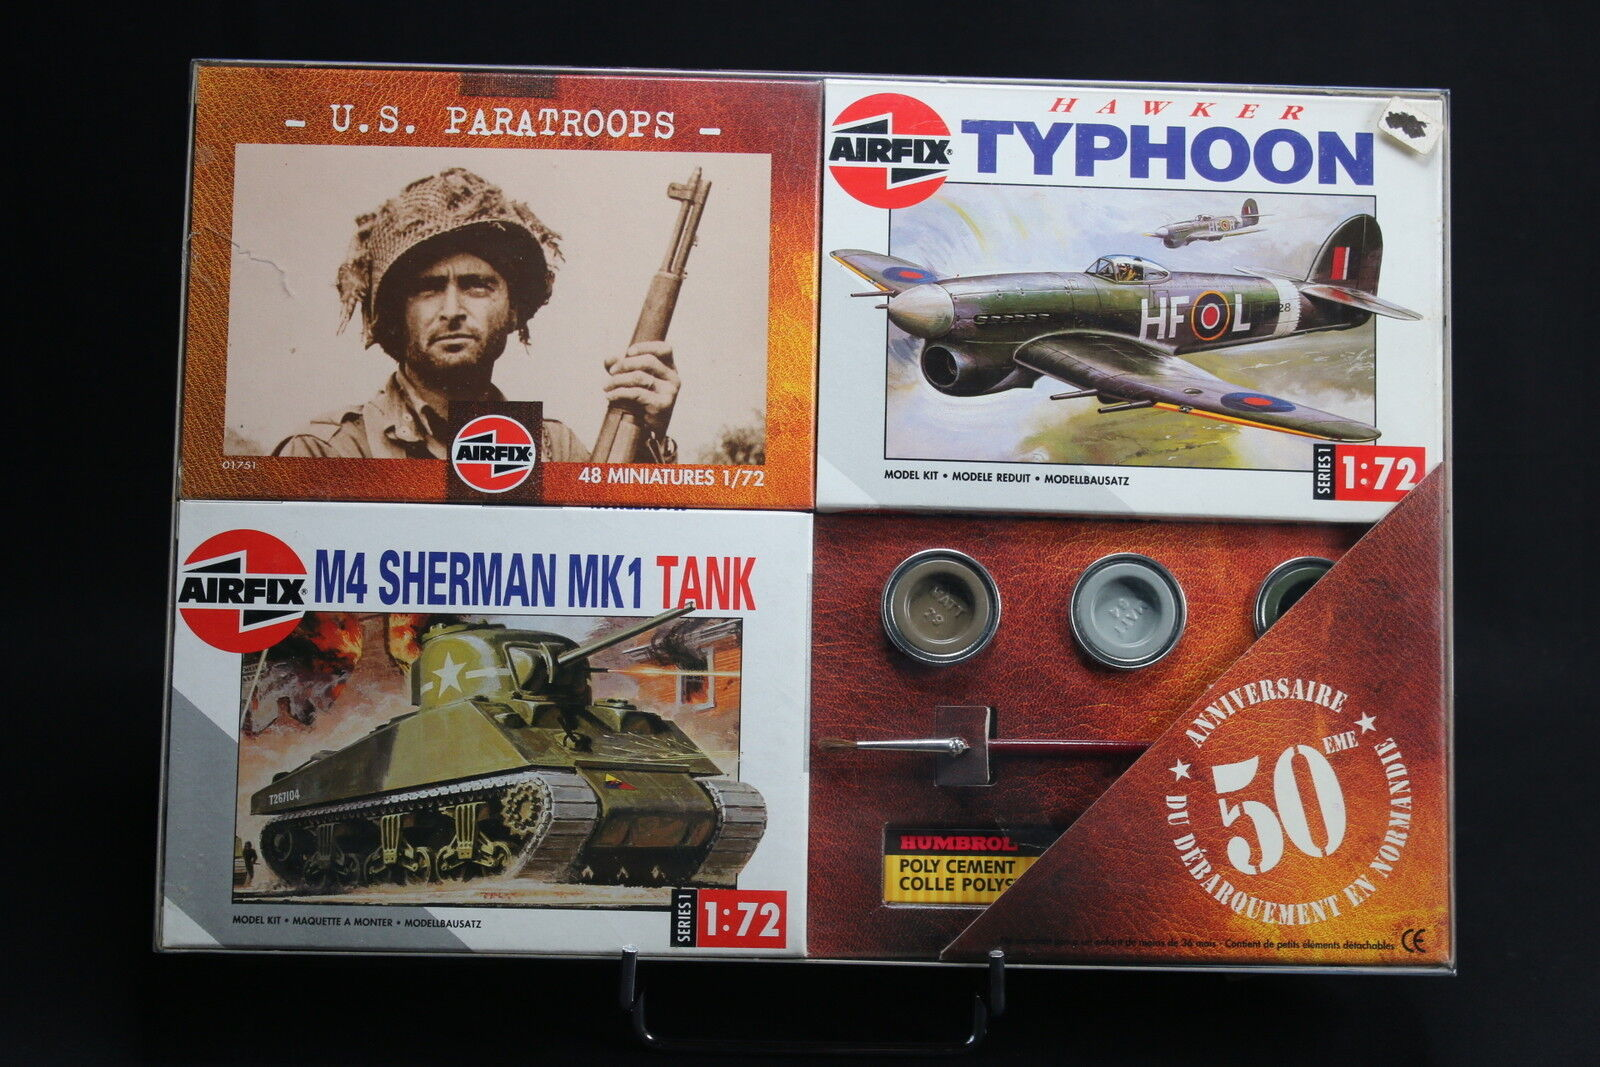 50 airfix xm013 collectionday anniversary landing 01751 01027 01303 wwii